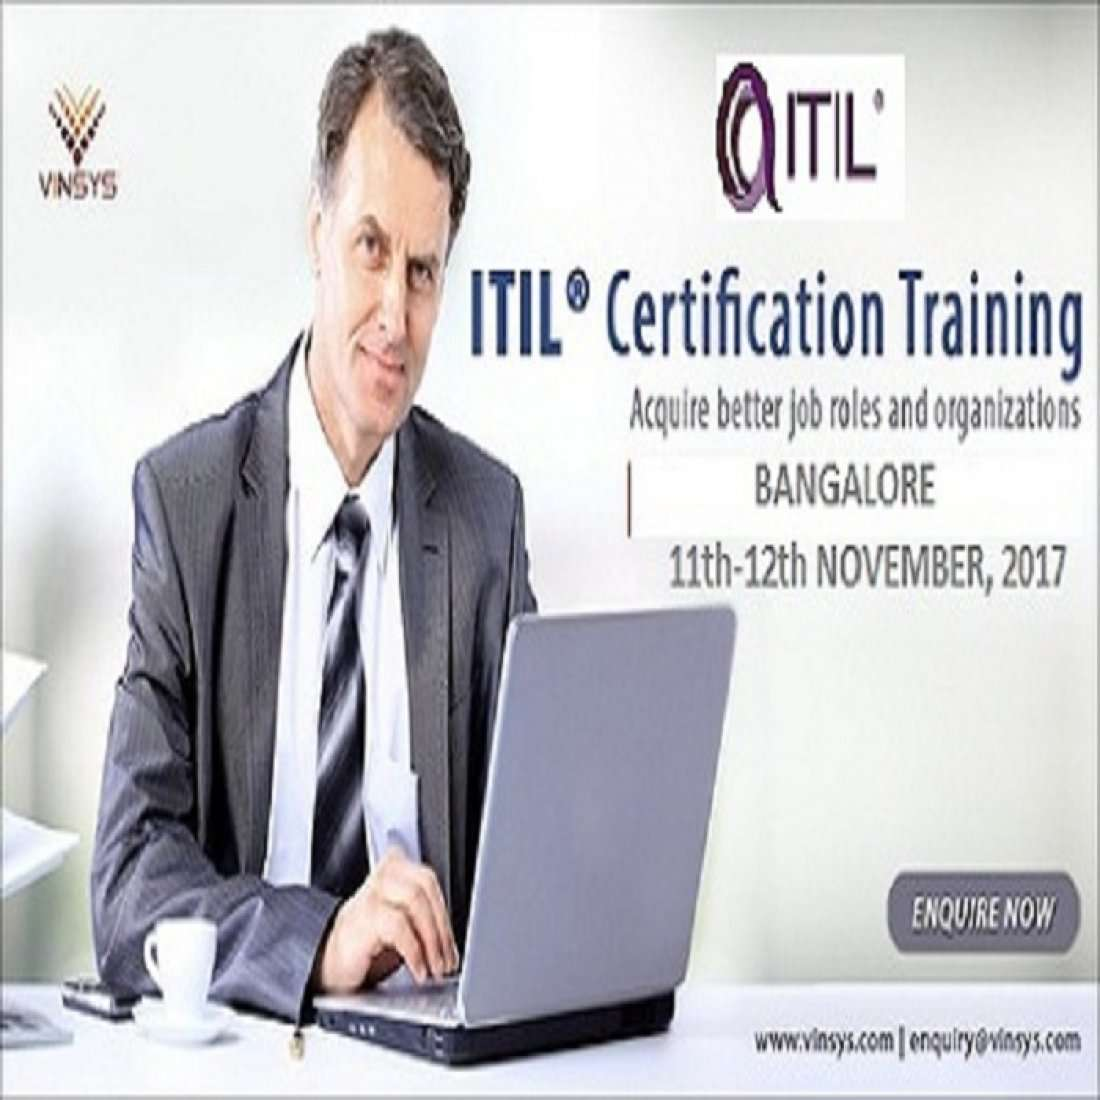 Itil Foundation Certification Training Bangalore In Vinsys At Btm